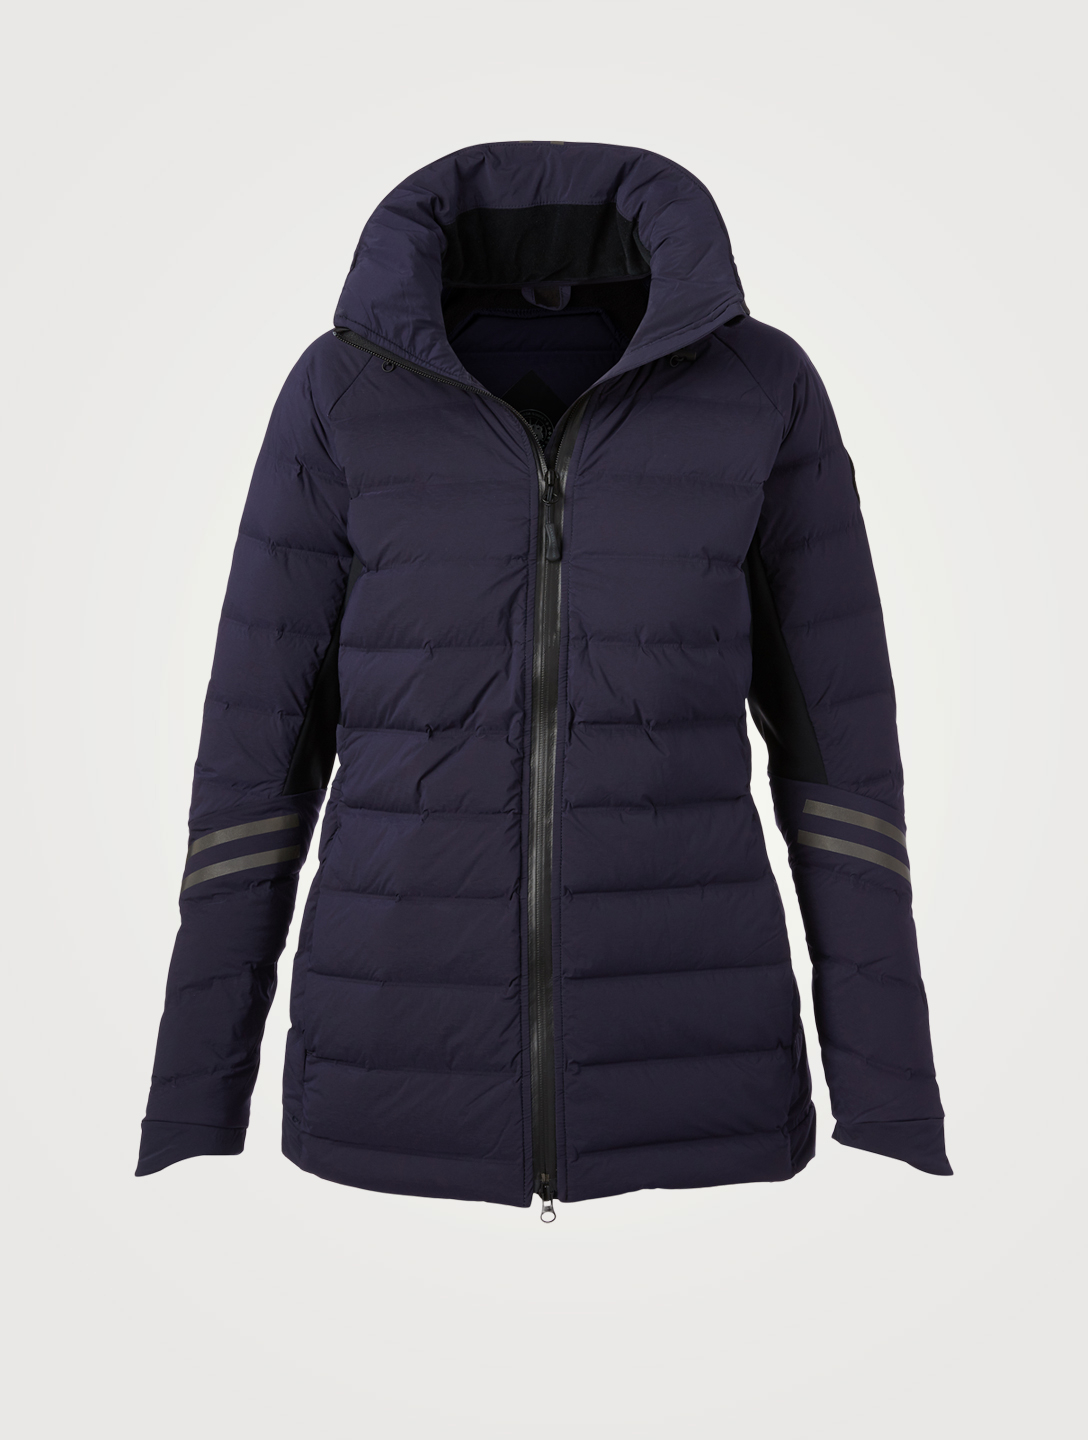 CANADA GOOSE Hybridge CW Black Label Jacket Women's Blue